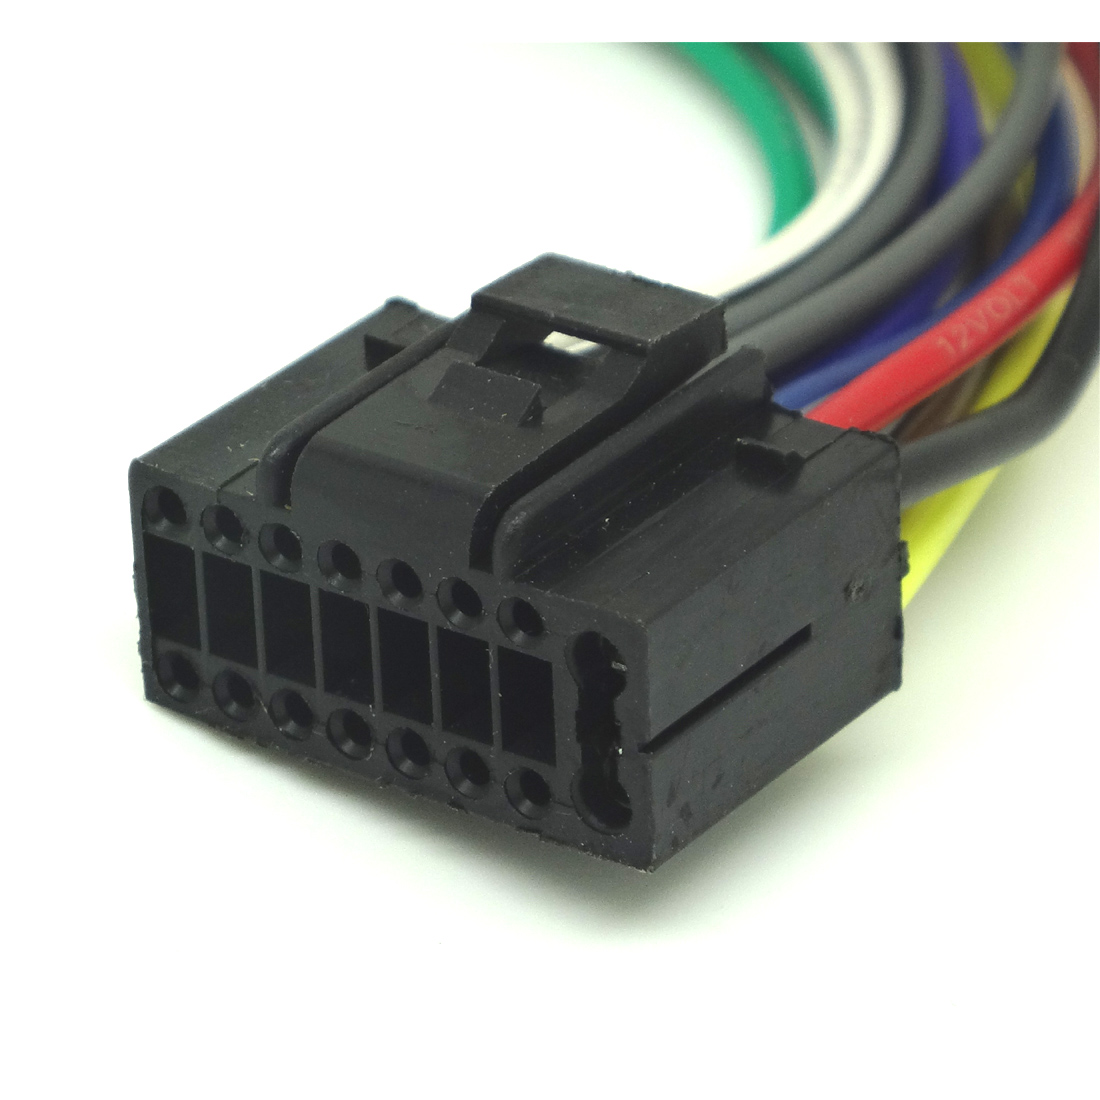 Kenwood Kdc X579 Wiring Harness Diagram Libraries Car Stereo Wire Player 16 Pin Radio Audio For Kdcplayer X590 X592 Kdcx595